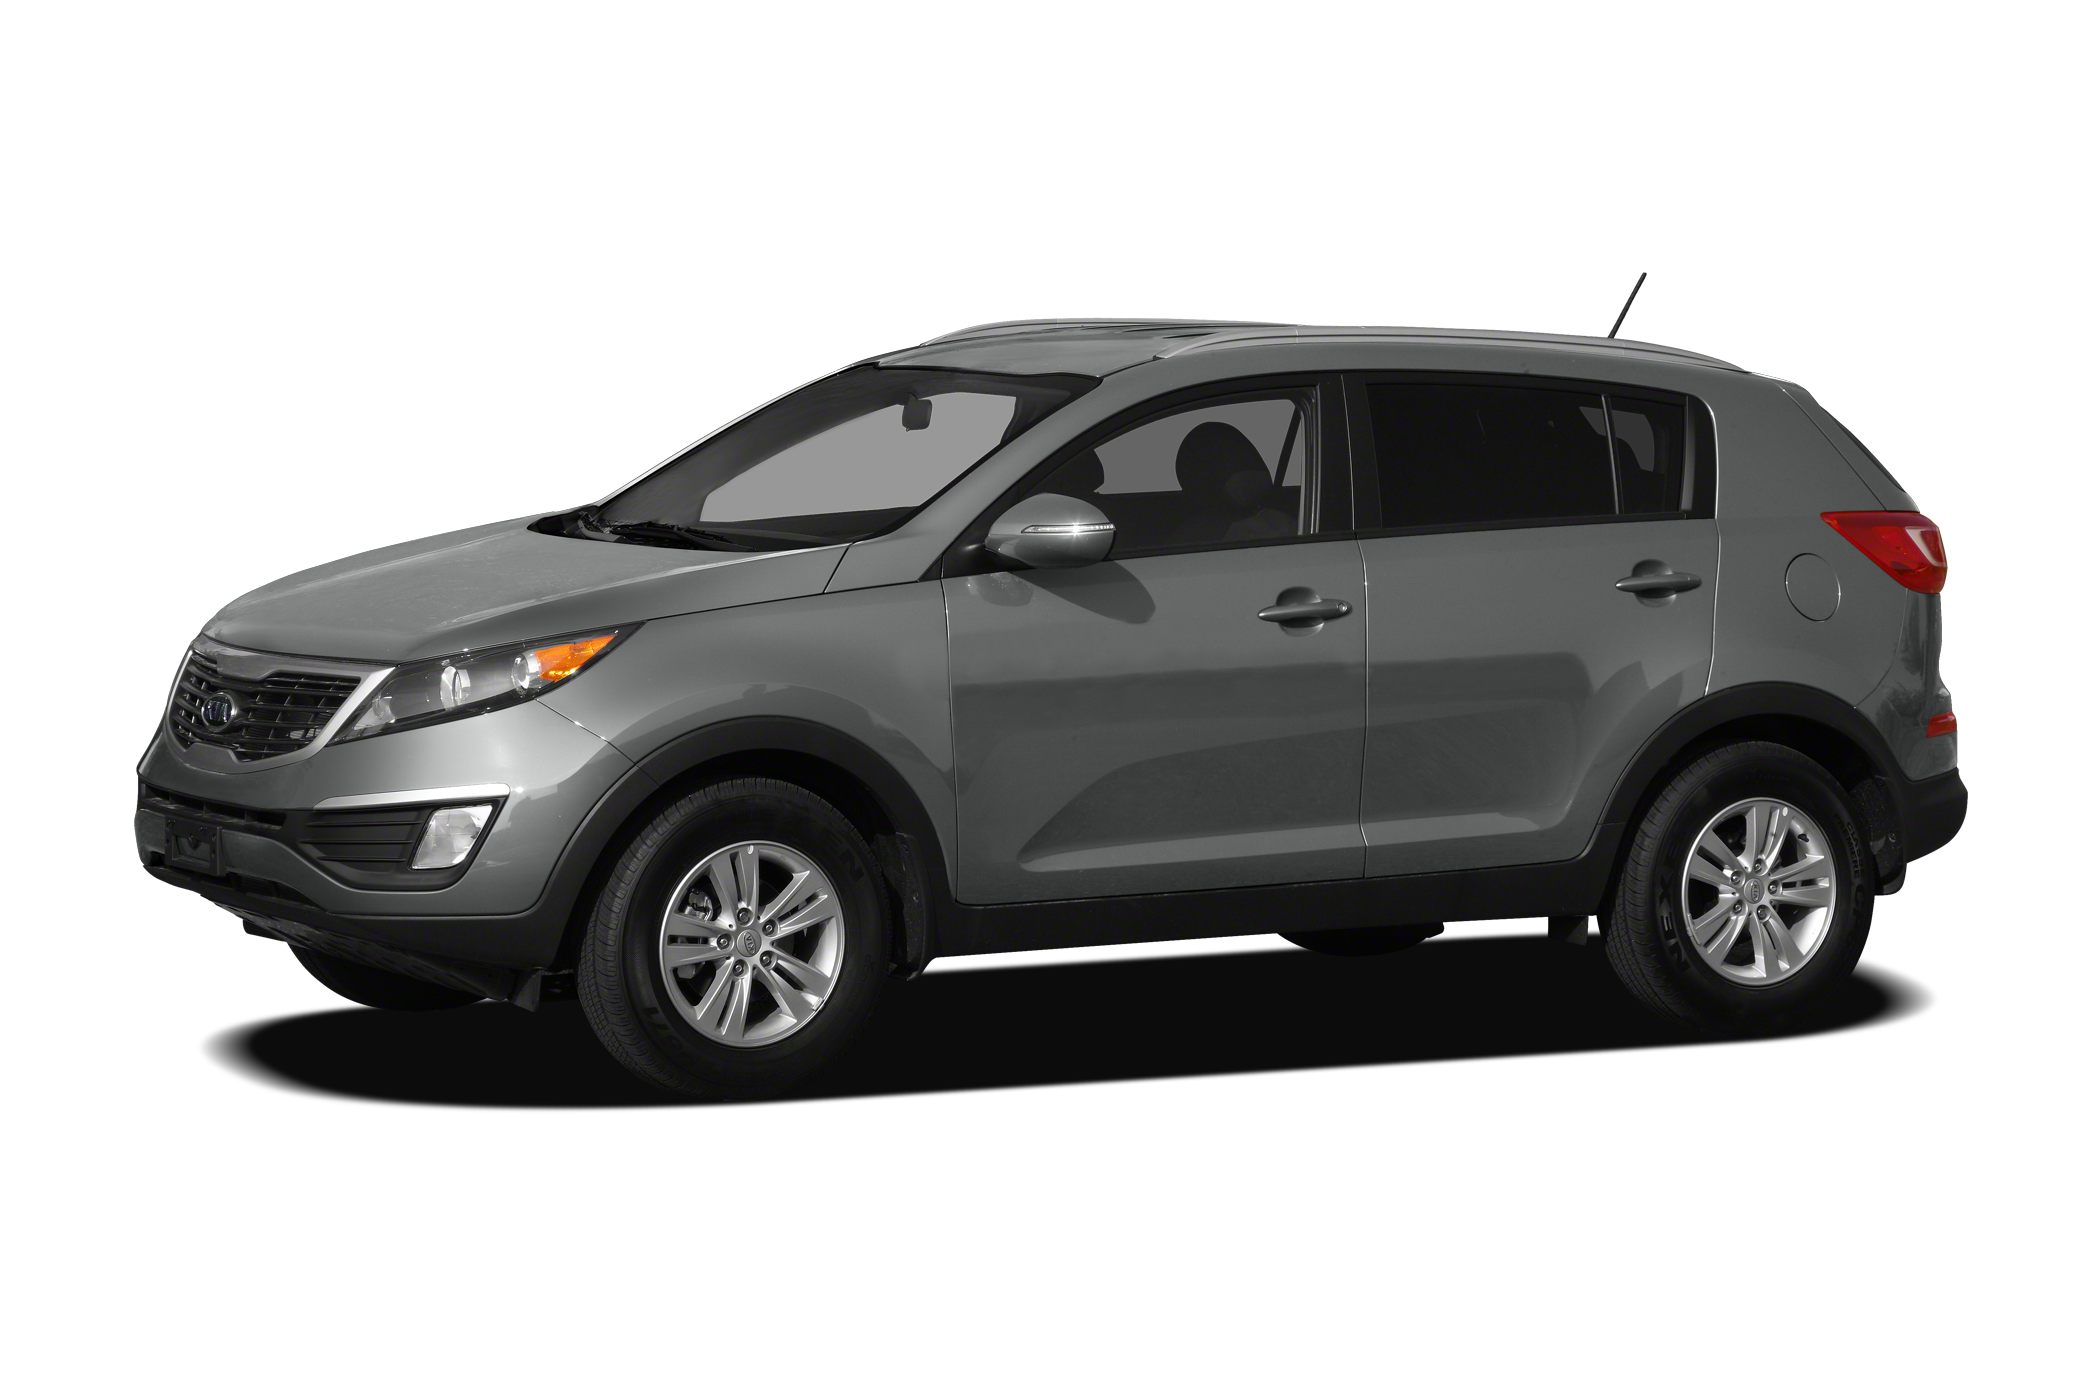 2012 Kia Sportage LX SUV for sale in Asheboro for $12,980 with 82,072 miles.